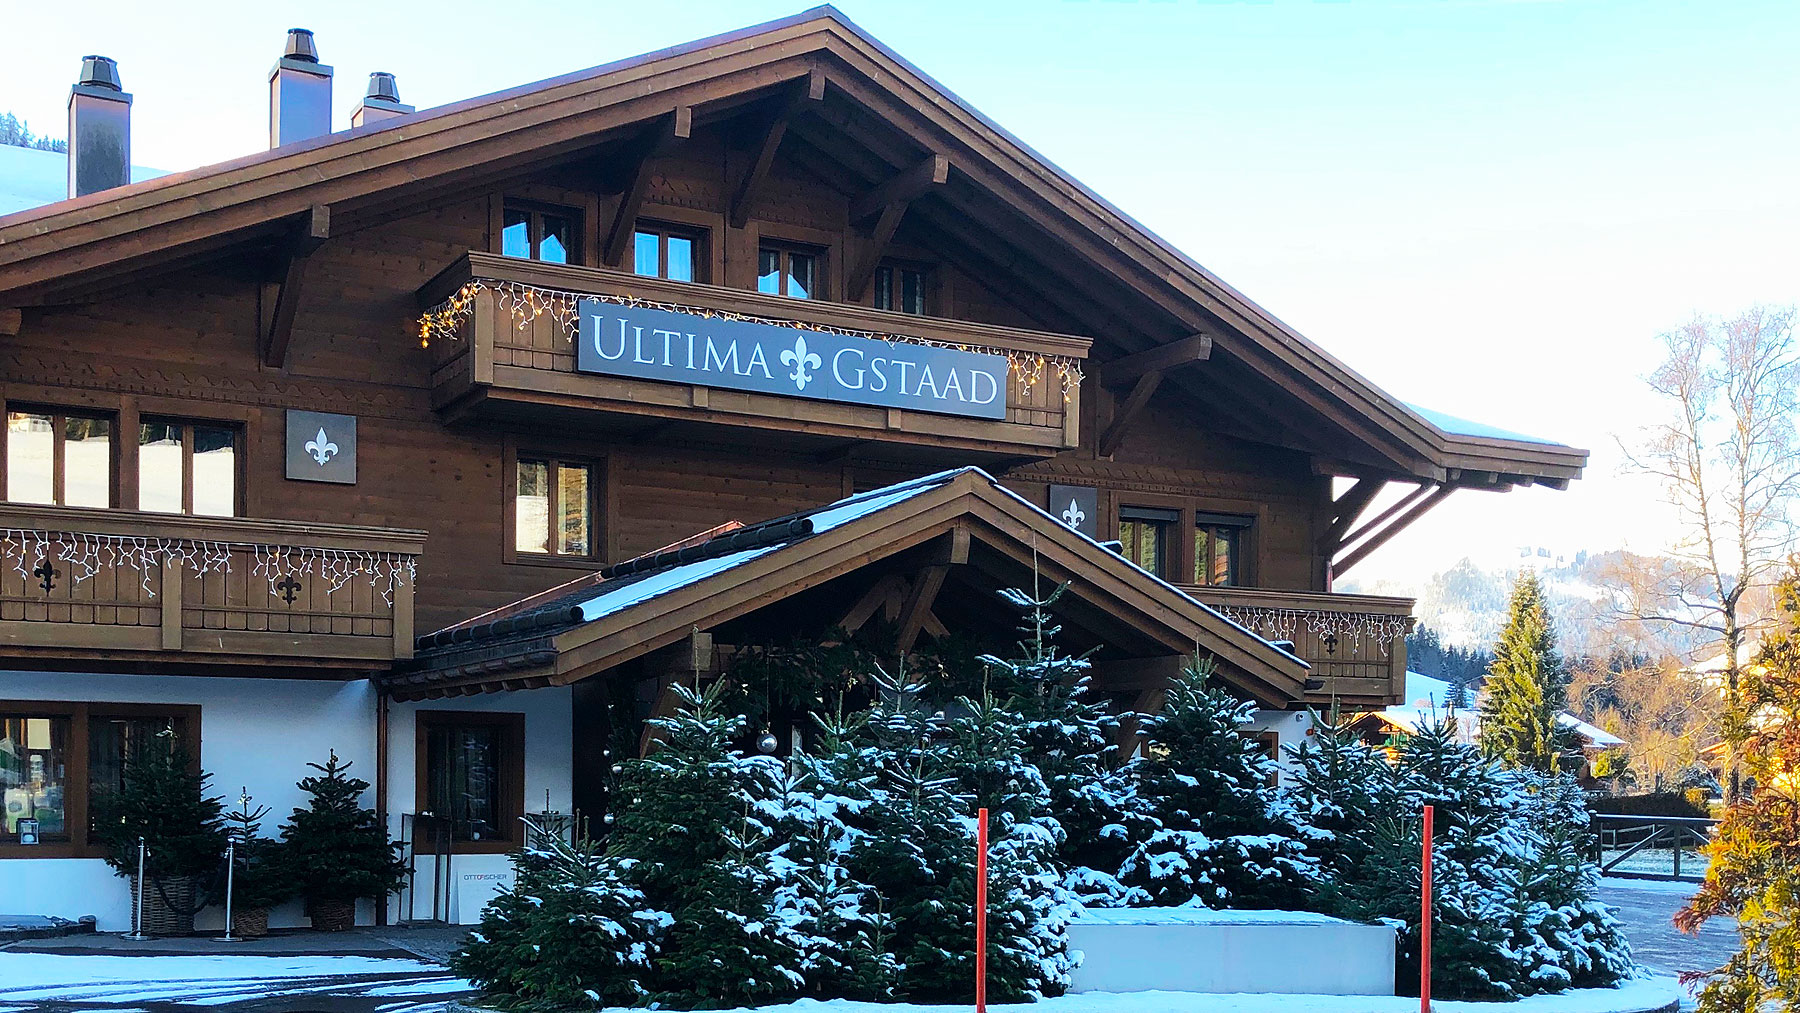 The Ultimate Experience Staying At The Ultima Gstaad Hotel